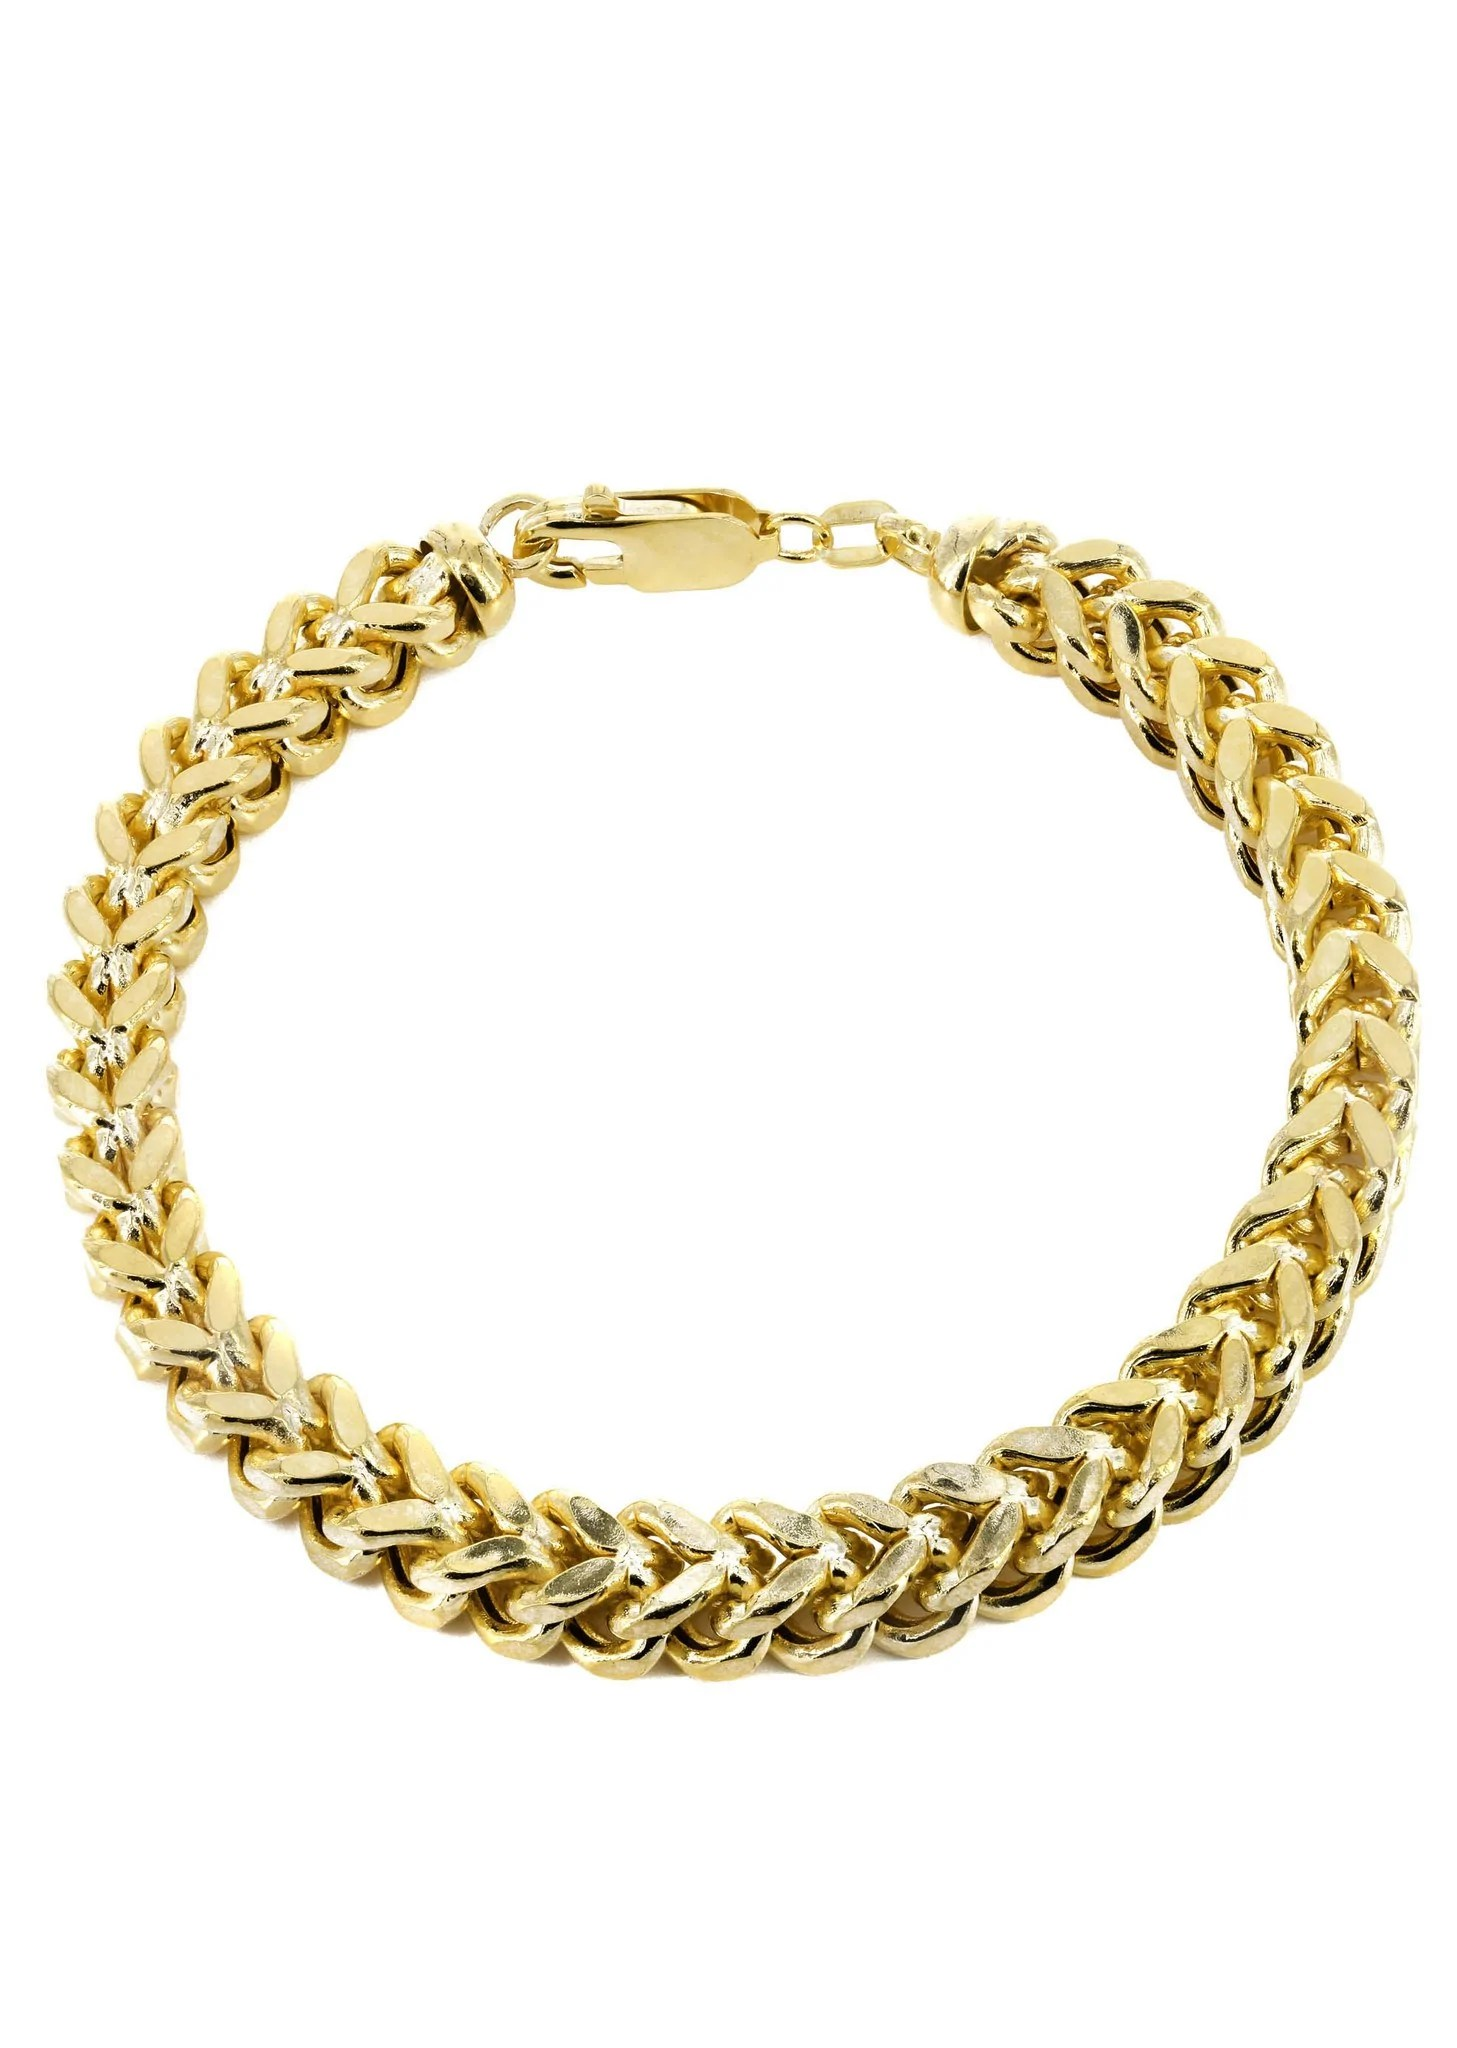 Hollow Mens Franco Bracelet 10k Yellow Gold Frostnyc